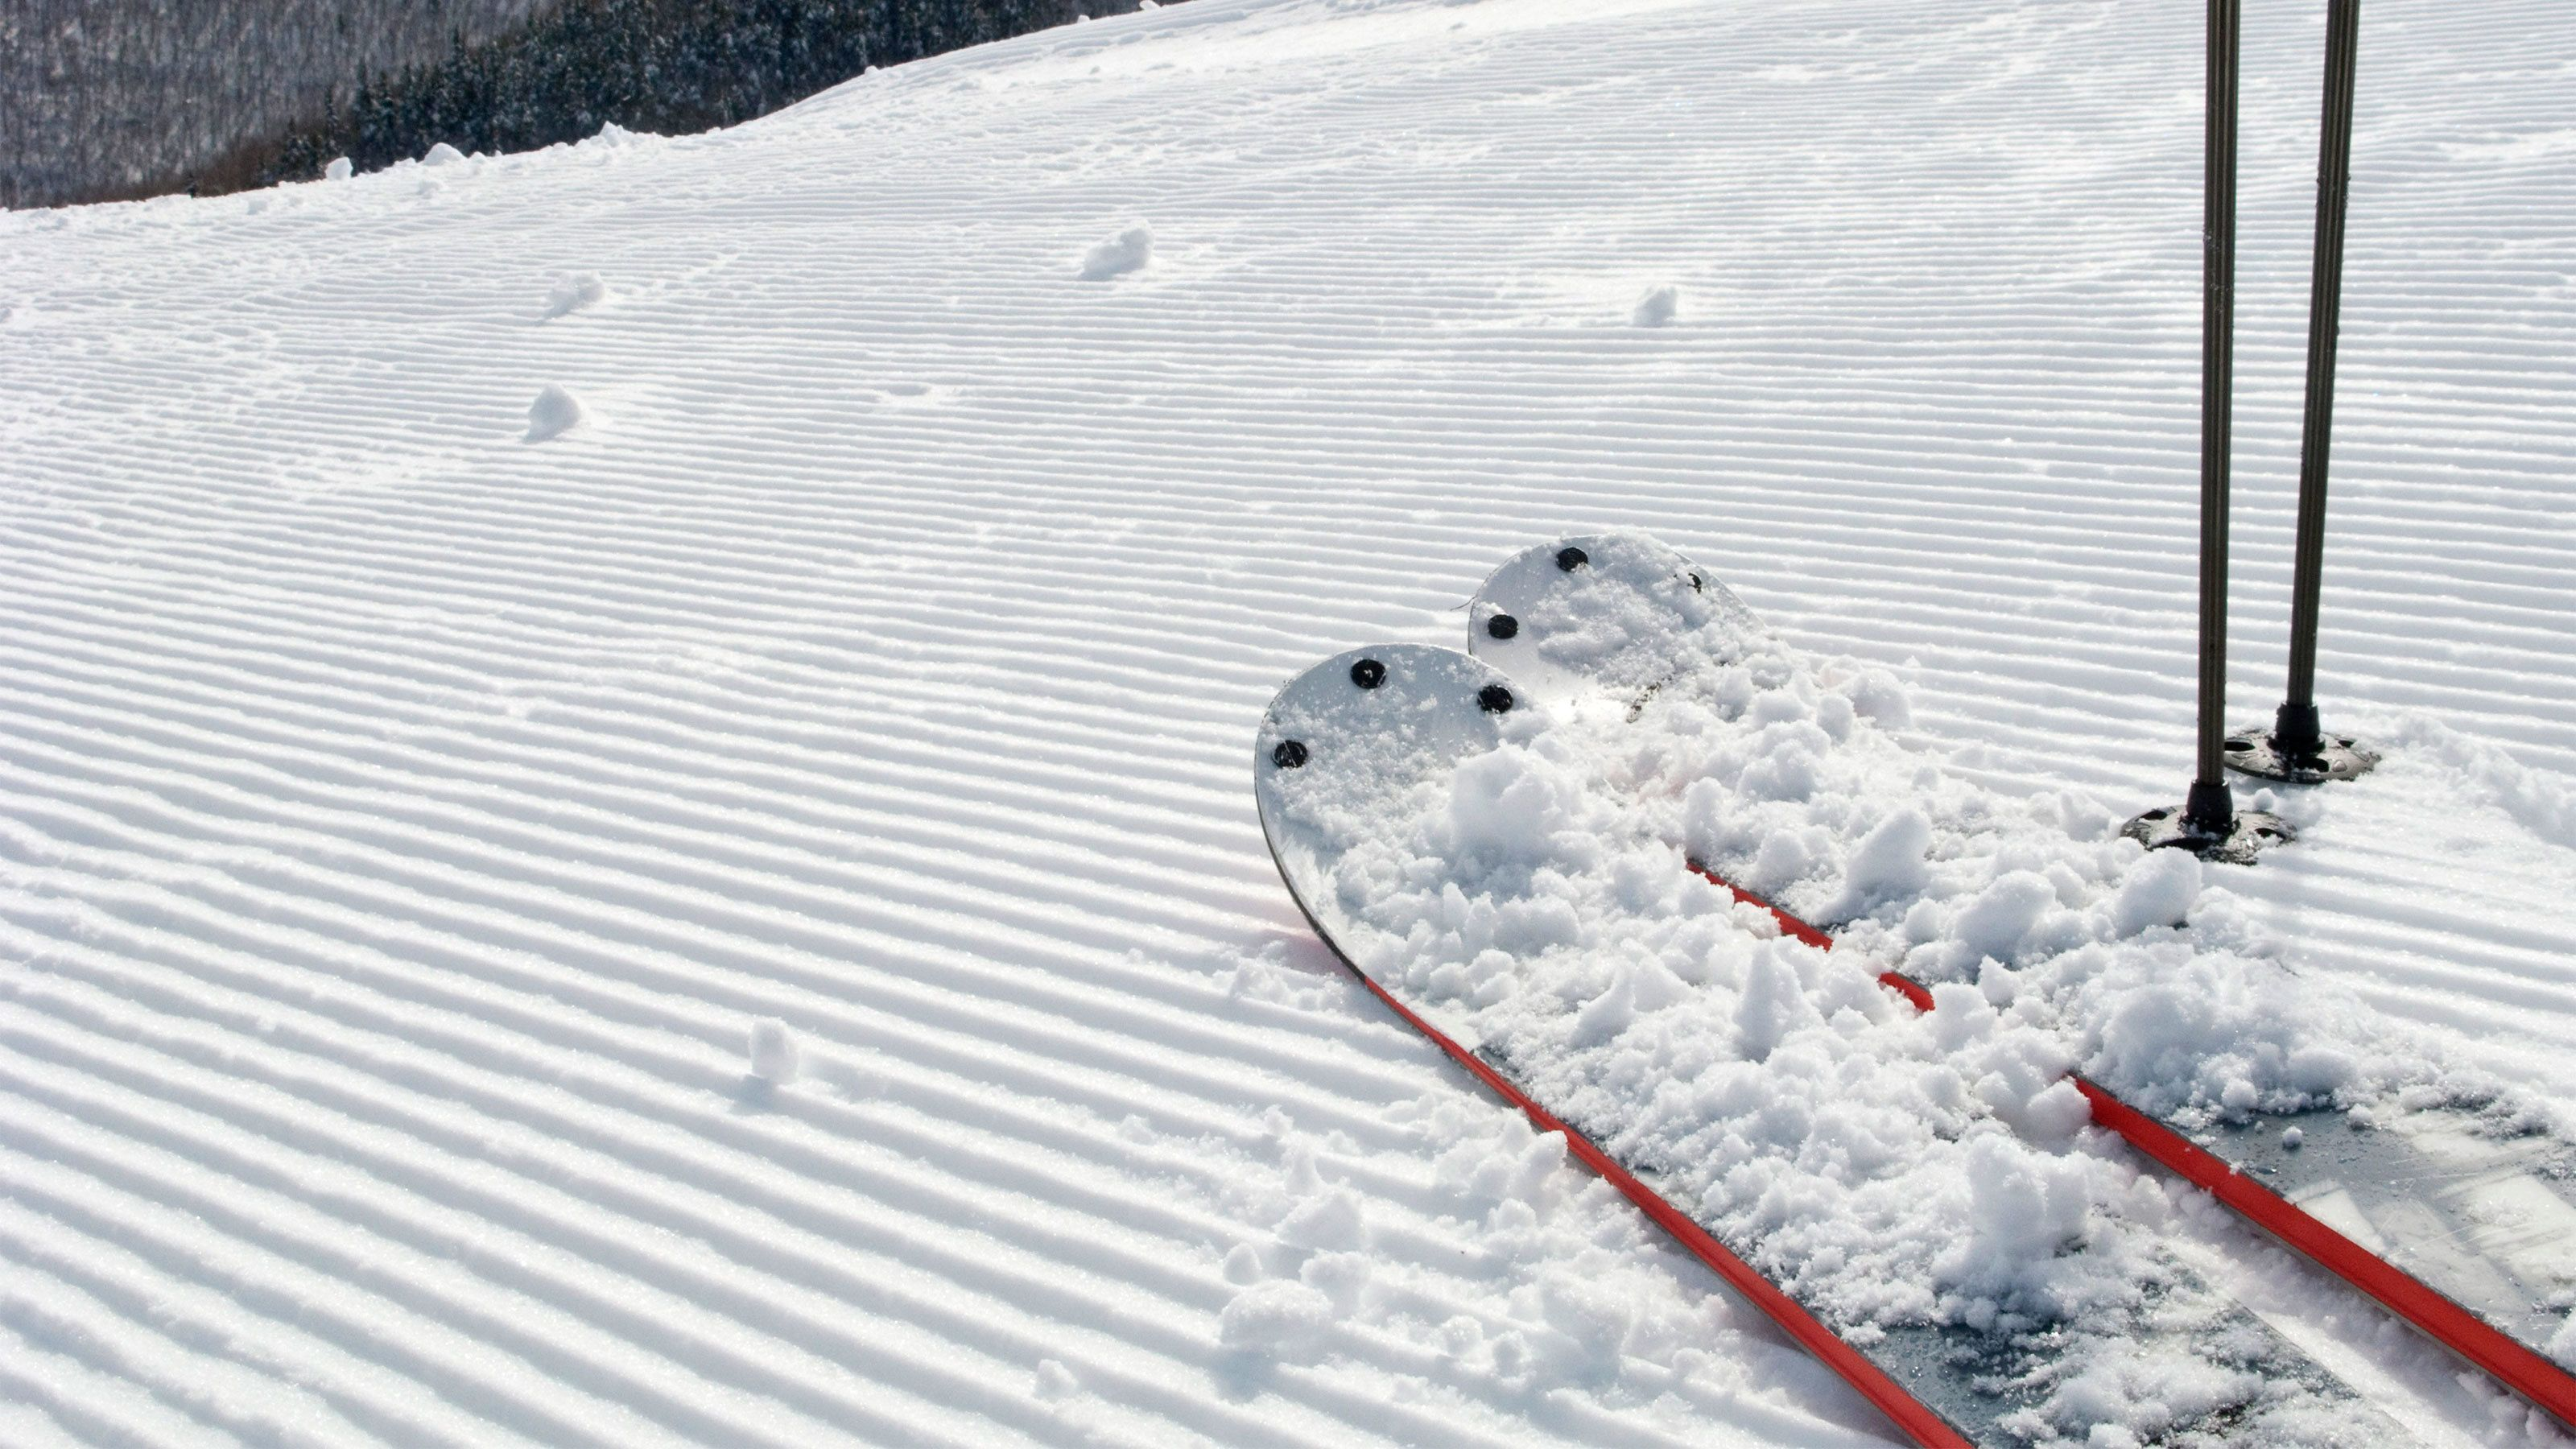 Fresh coat of snow covers a pair of skis